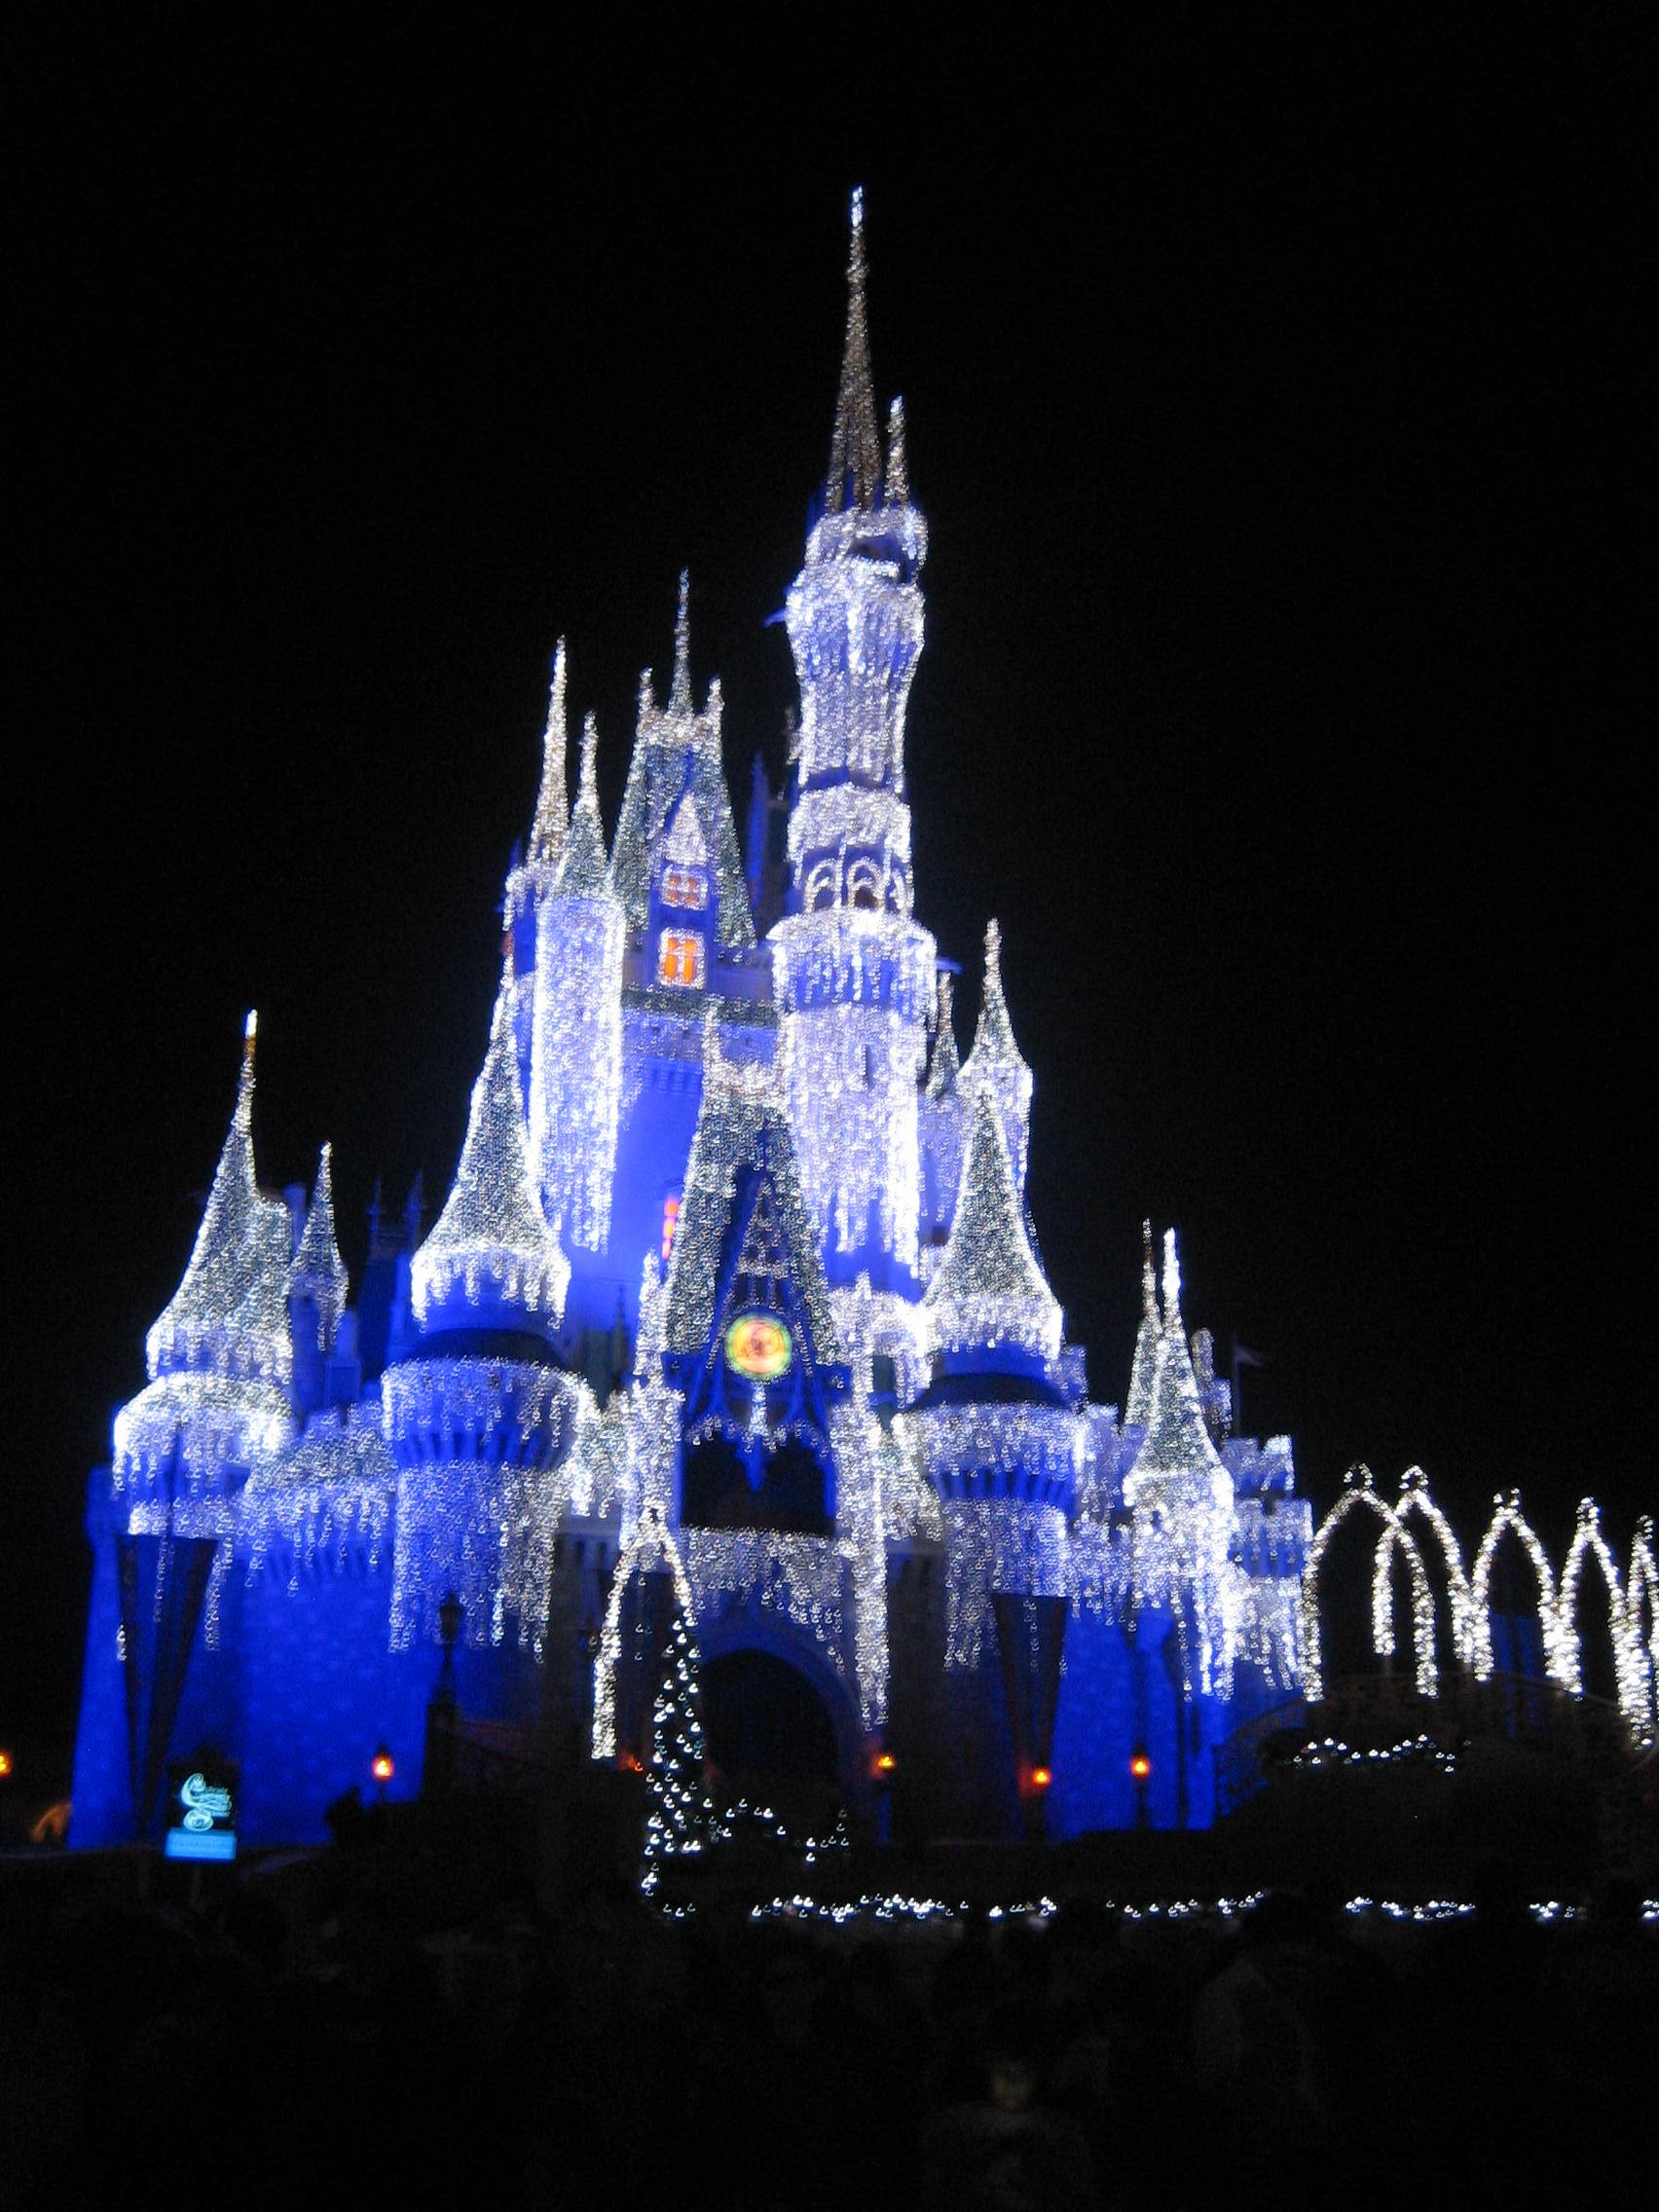 Cinderella Castle Christmas Lights.Behind The Scenes Look At Disney Holiday Services As They